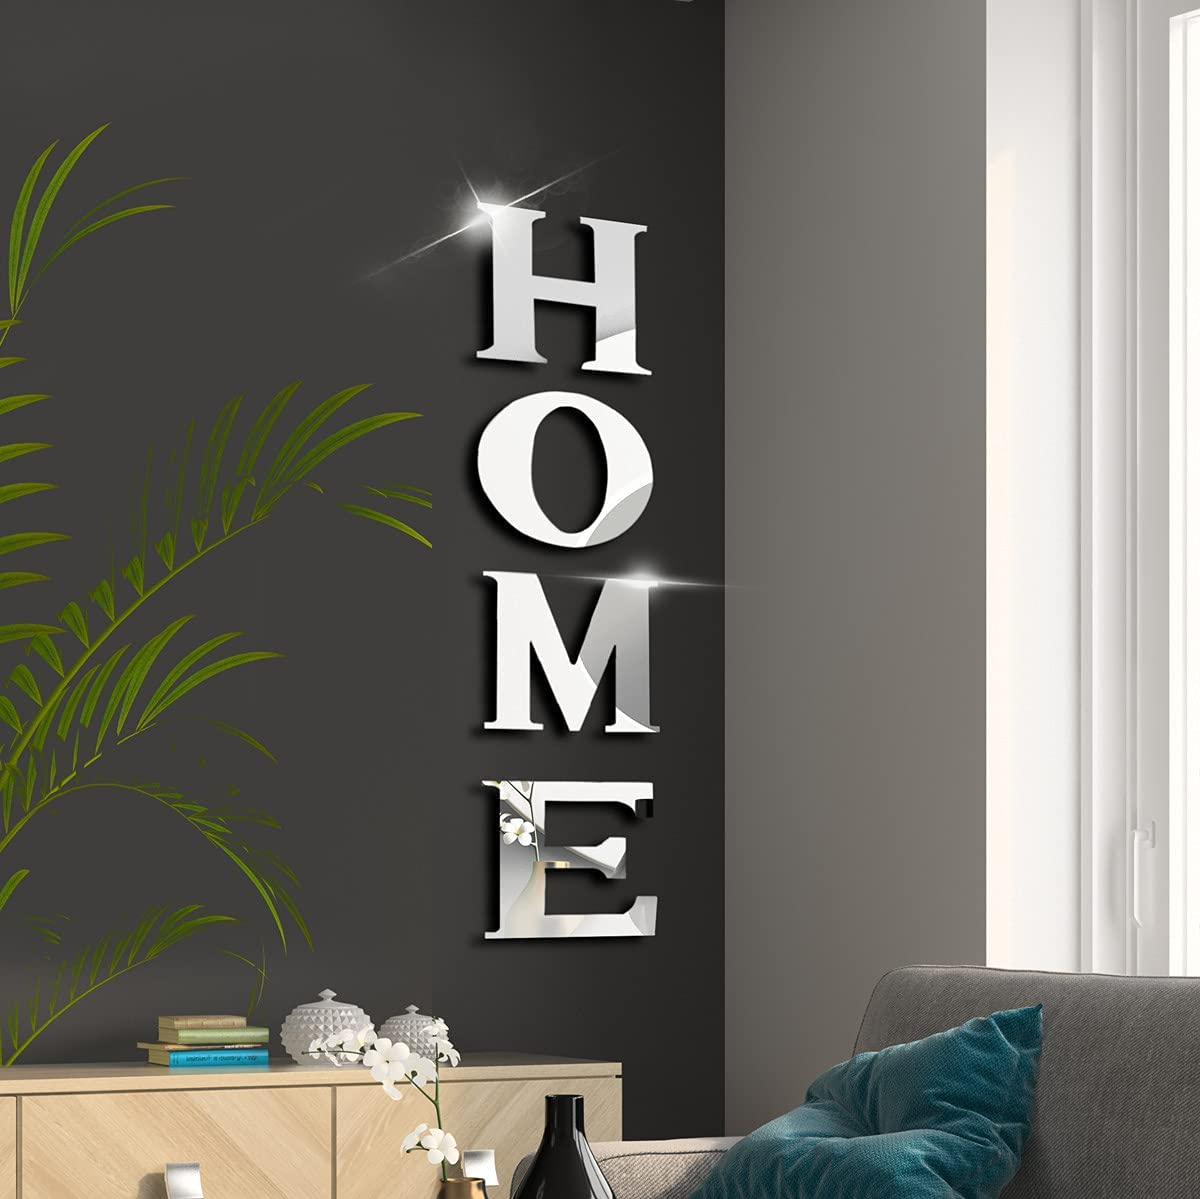 Gusuhome Home Sign Letters Wall Decor for Family Farmhouse Set of 4 Acrylic Decorative Mirror Wall Stickers Wall Decals for Living Room Bedroom Kitchen